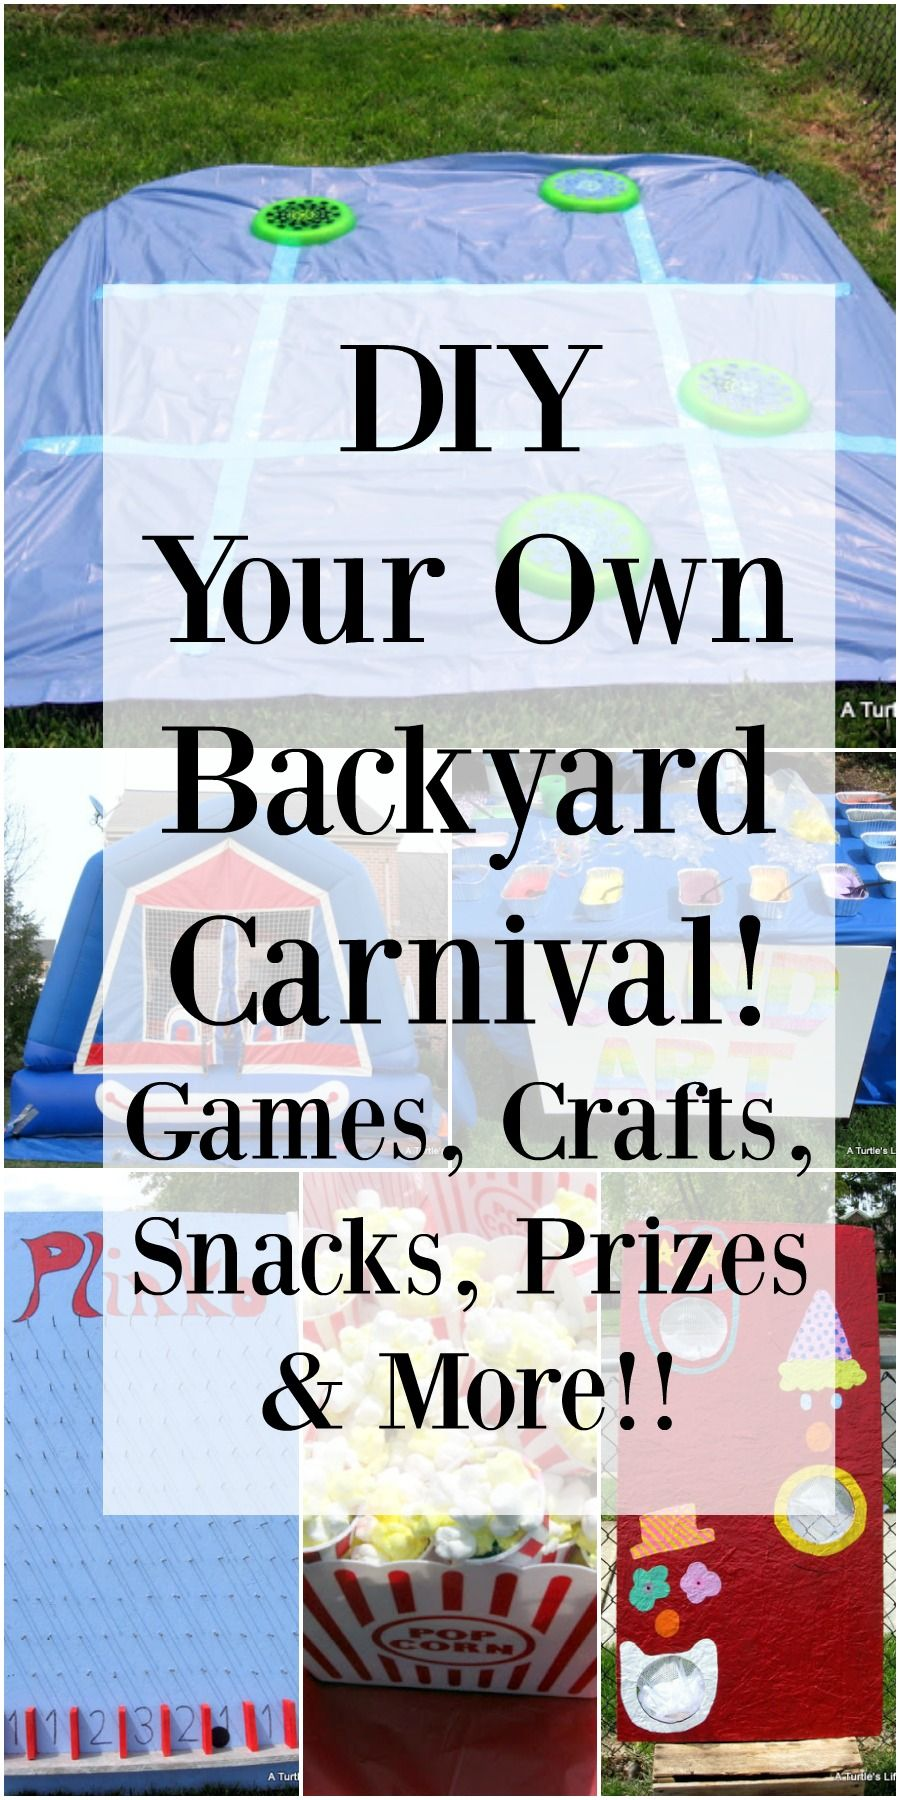 Diy Your Own Backyard Carnival This Link Has Tons Of Really Great